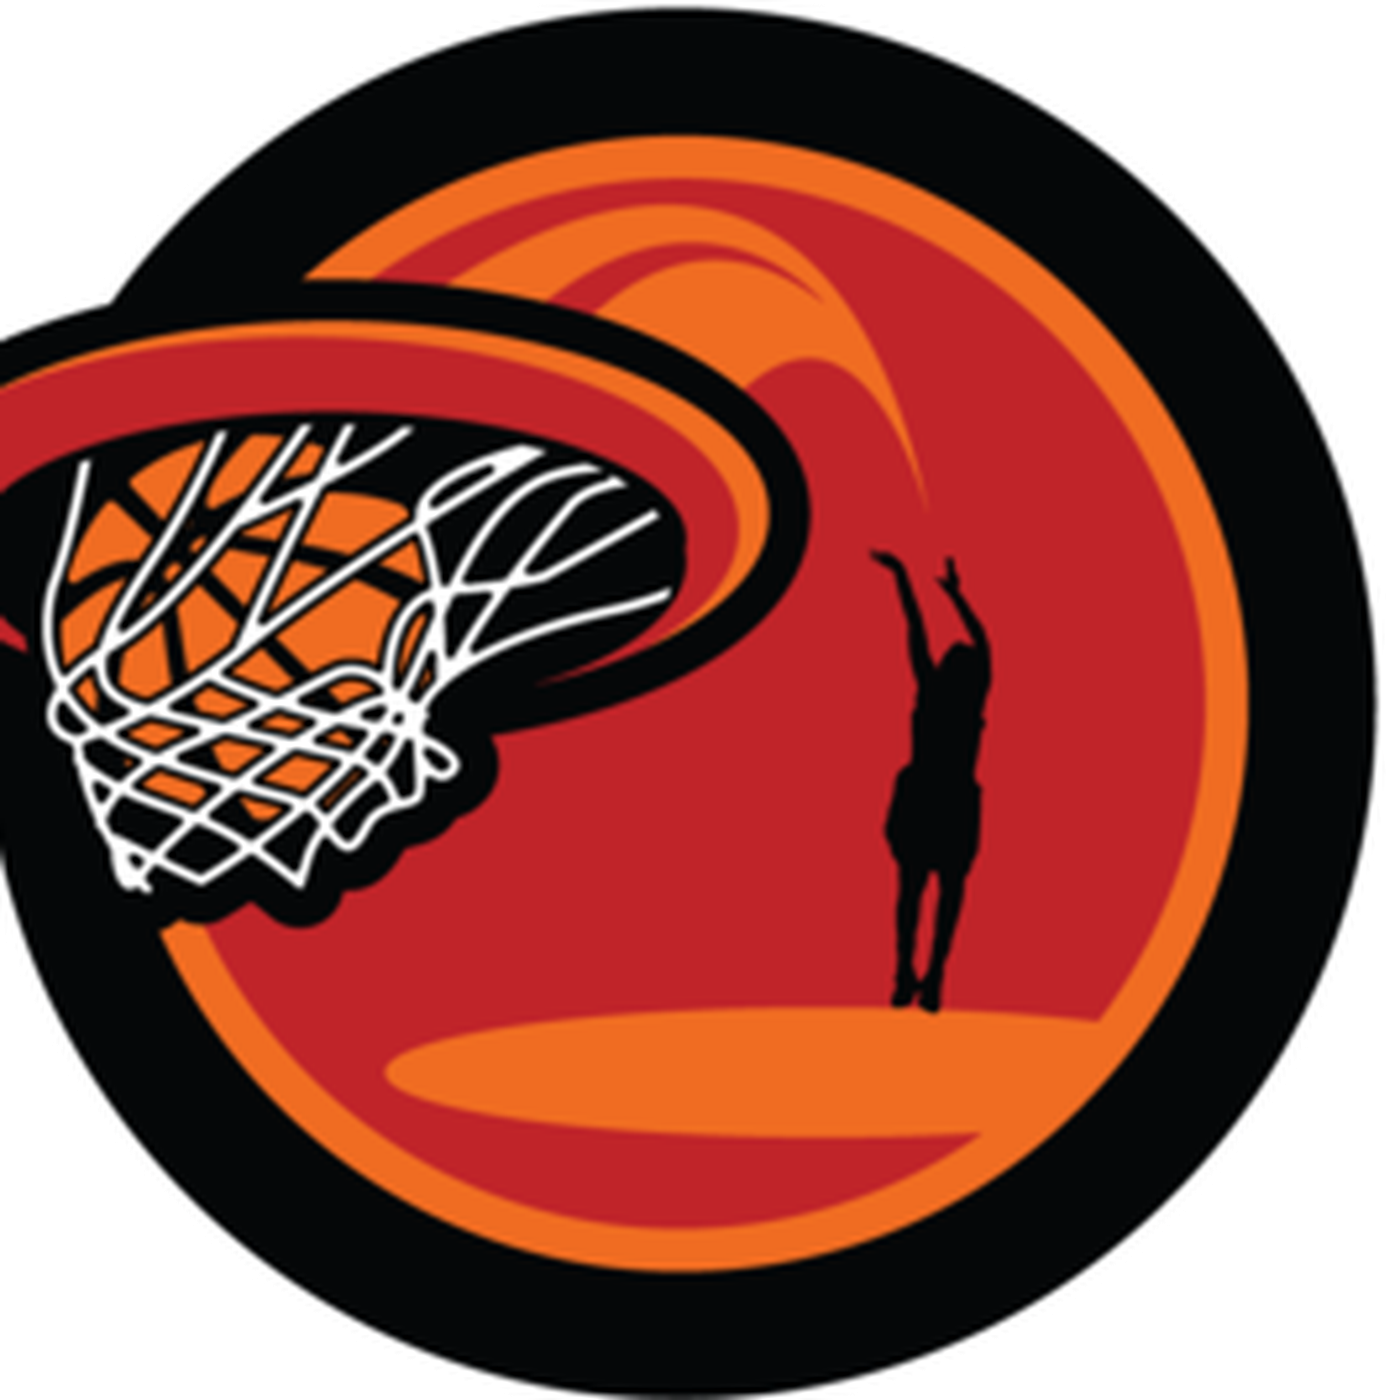 Backboard breaking basketball clipart clipart library stock Blast from the Past: USC defeats Louisiana Tech in the 1983 NCAA ... clipart library stock